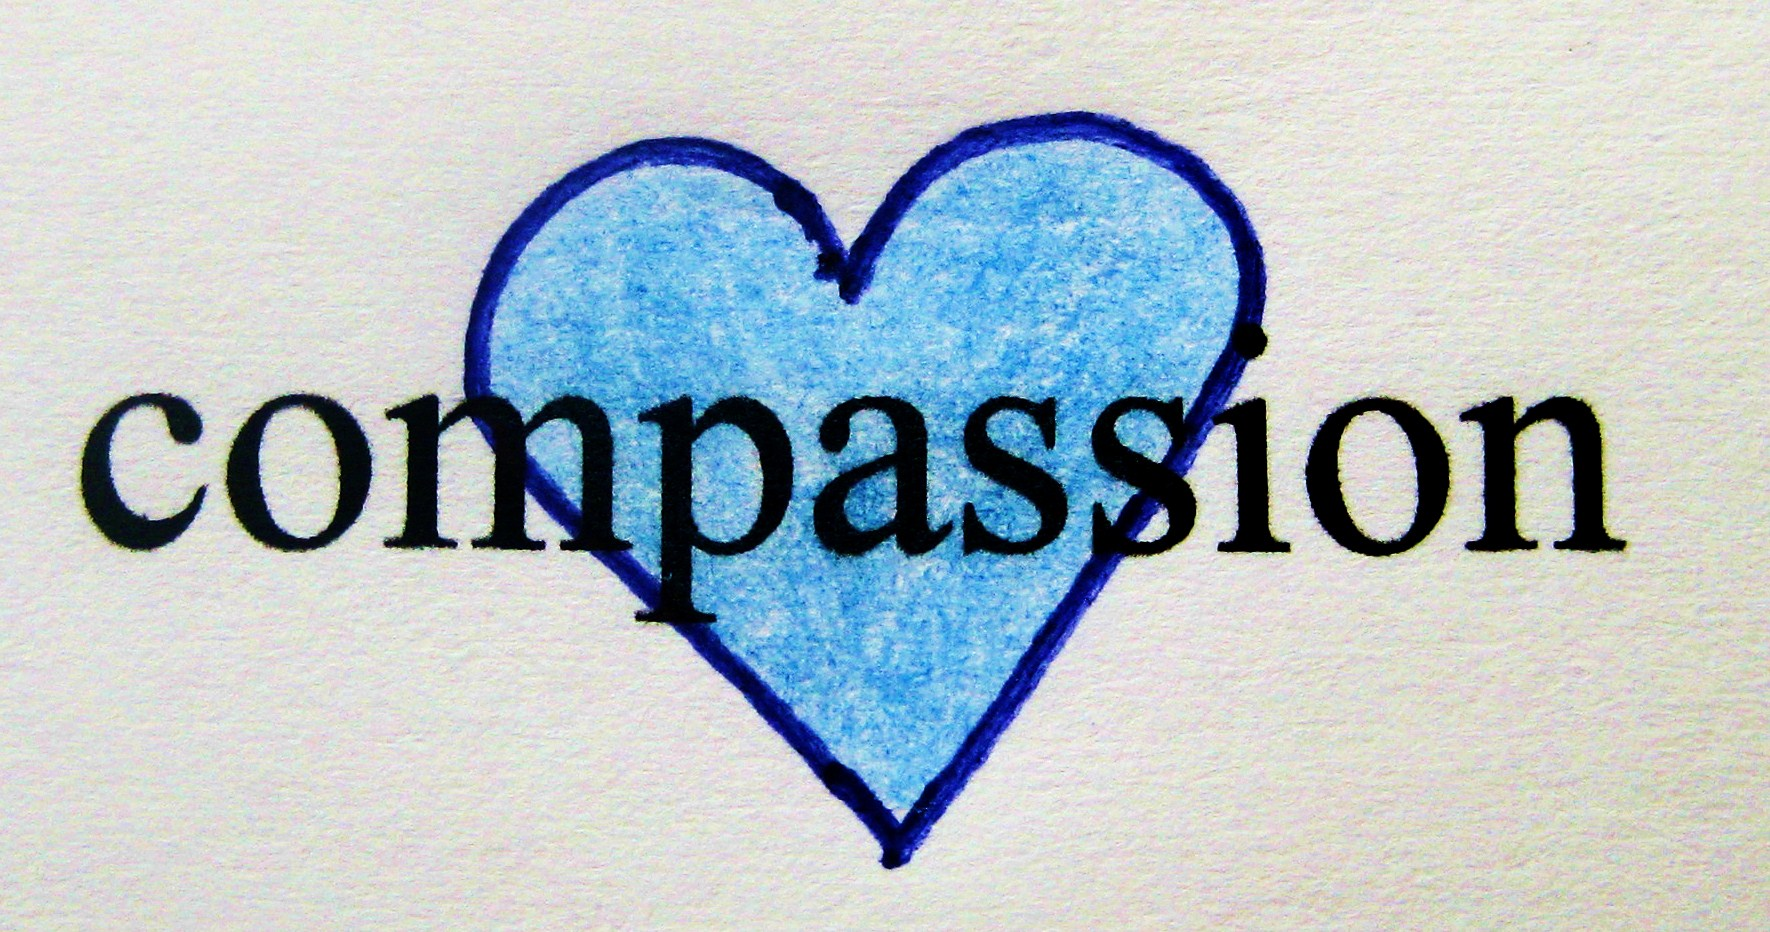 Intro to Compassion - Monday, August 6th6:00-8:00 p.m.$20Come out to hear about what Compassion Training is all about. Why should we train in compassion? We will be learning about the science of compassion as well as working with simple experiential exercises that will leave you inspired.Where: ParkAire Consultants 4939 Lower Roswell Rd. Marietta, GA 30068